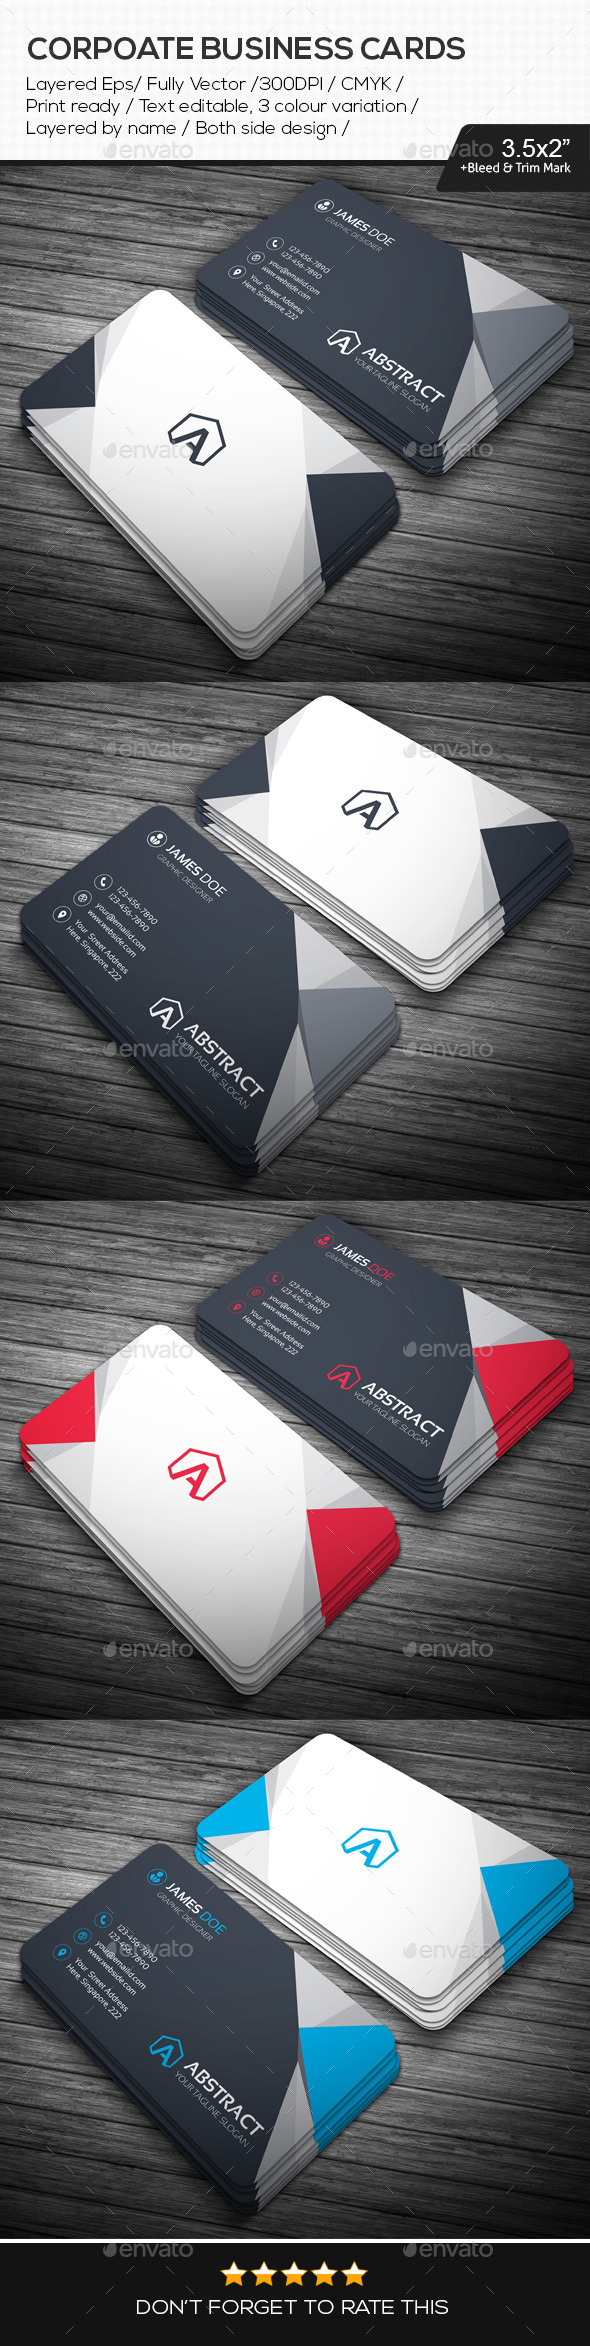 GraphicRiver Corporate Business Cards 10940187